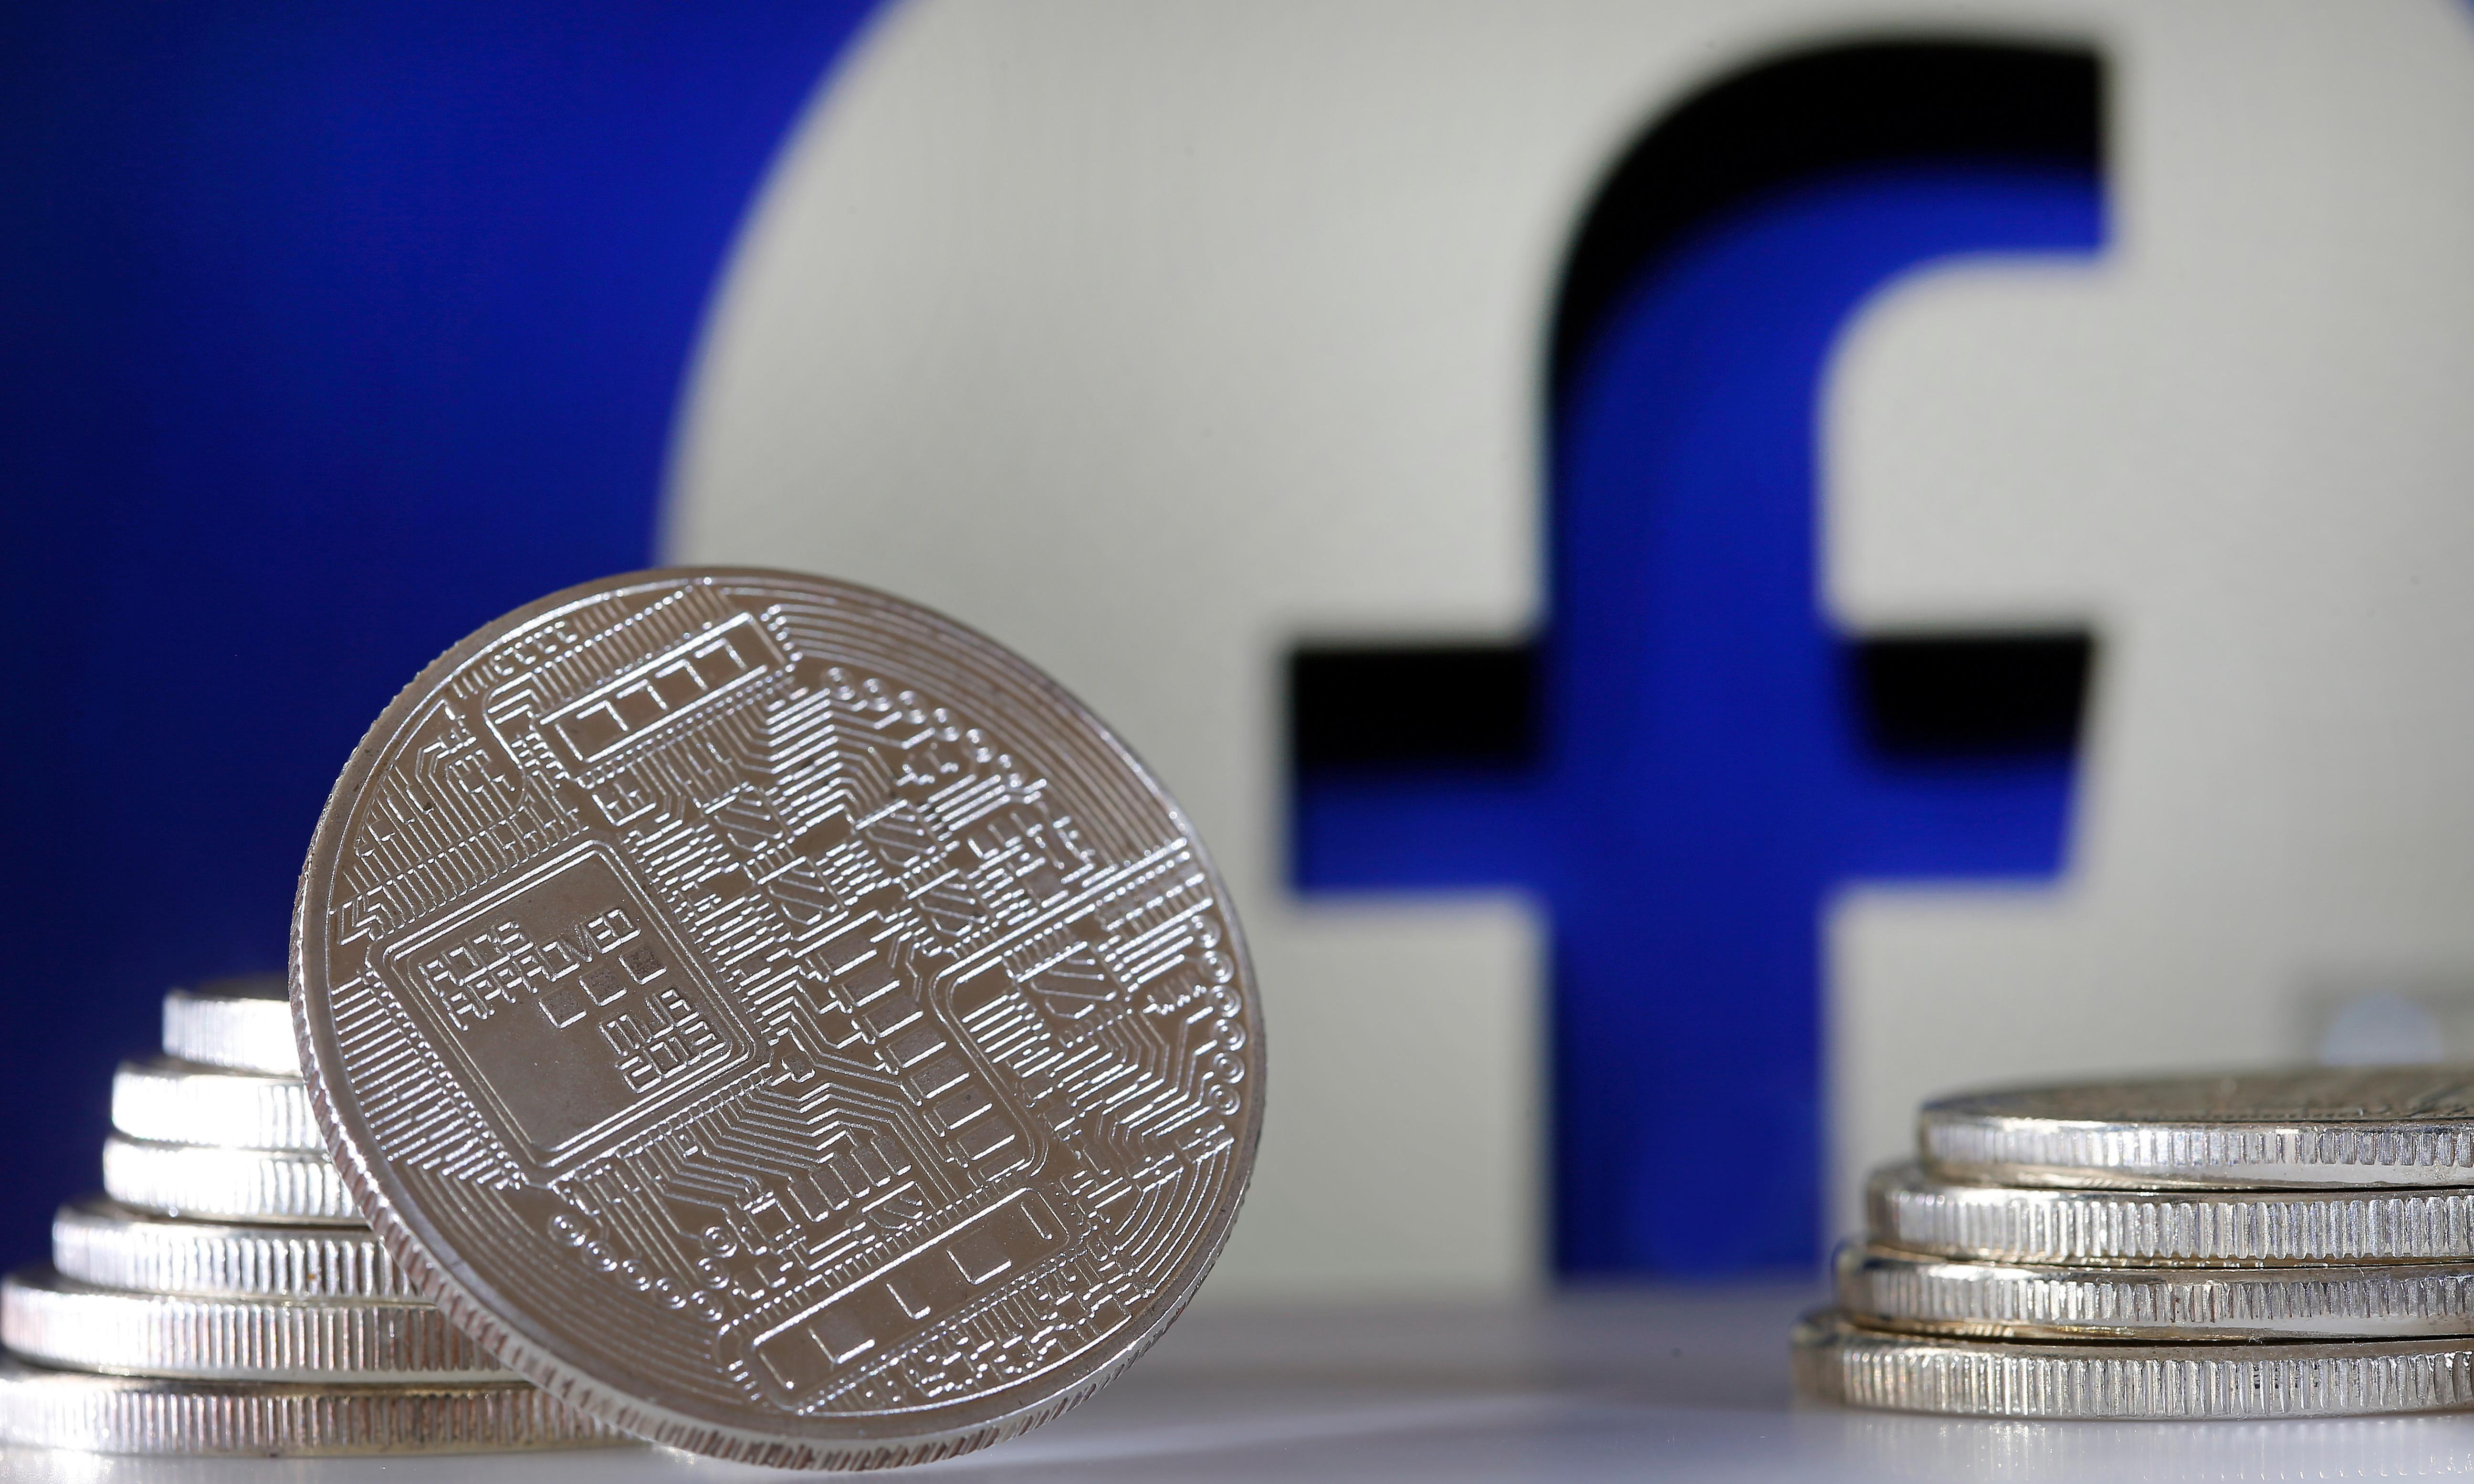 Bitcoin passes $11,000 on news of Facebook's cryptocurrency plan